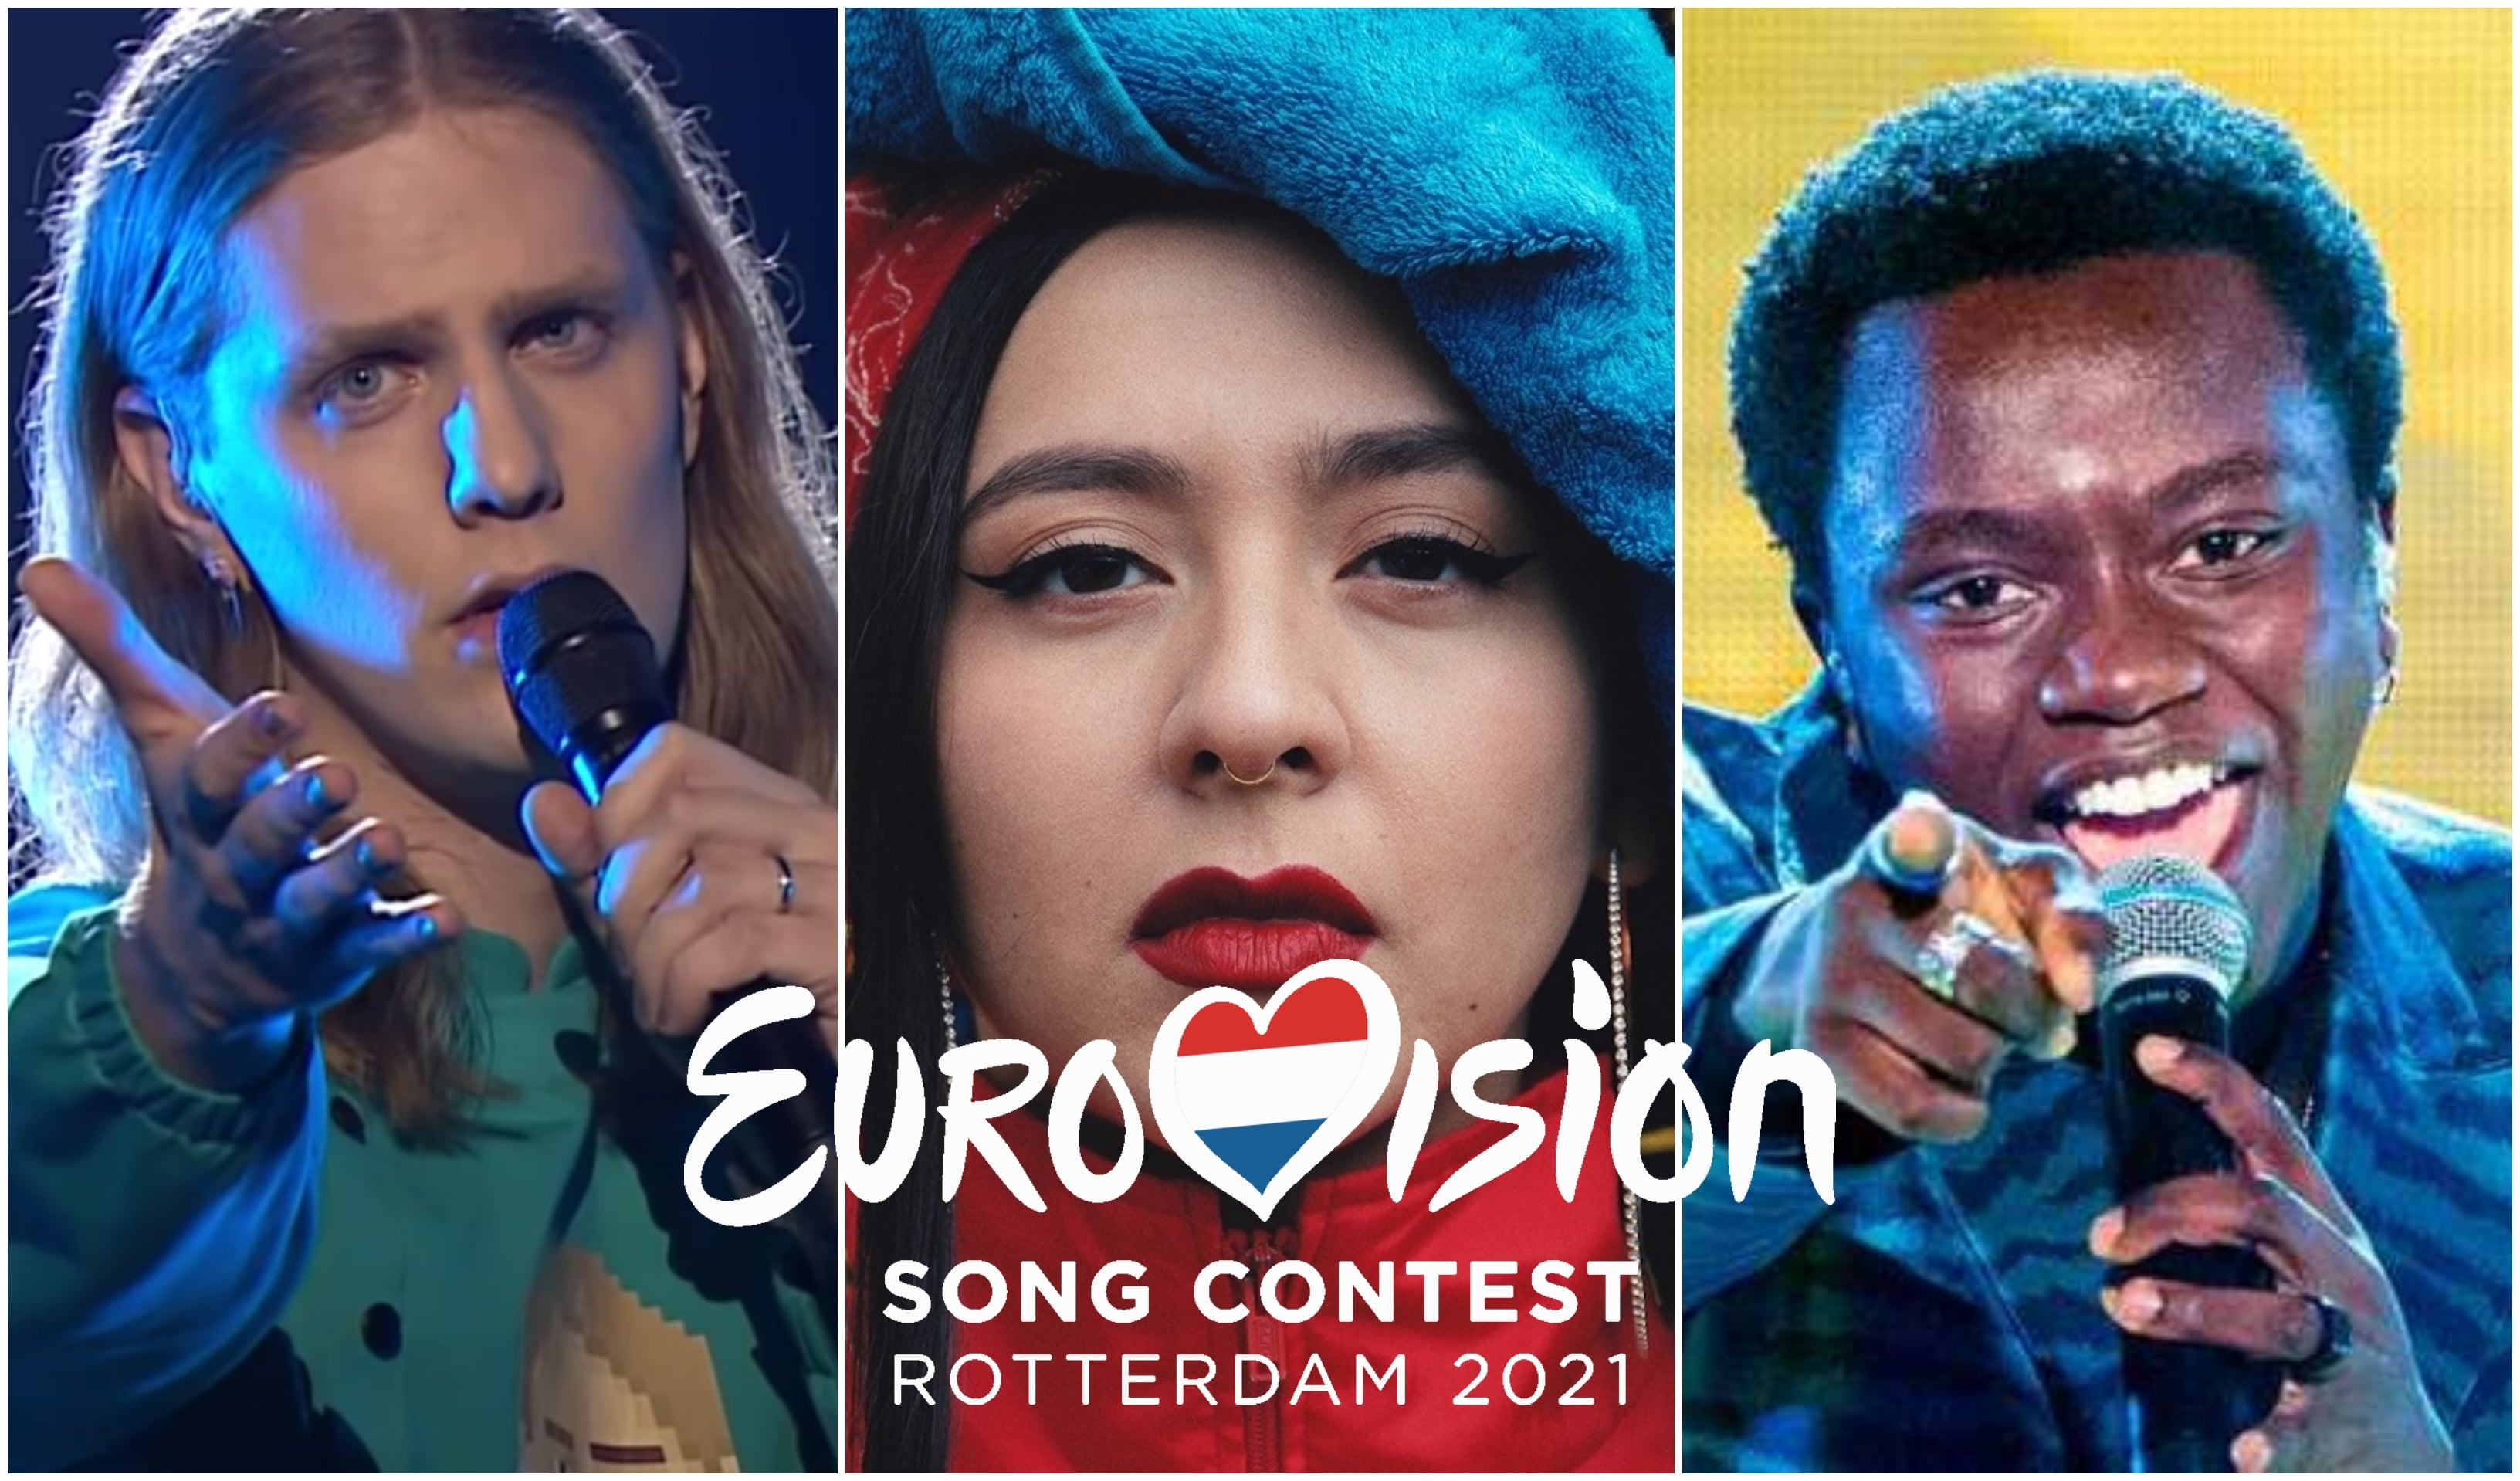 Eurovision 2021 contestants from Iceland, Russia and Sweden.